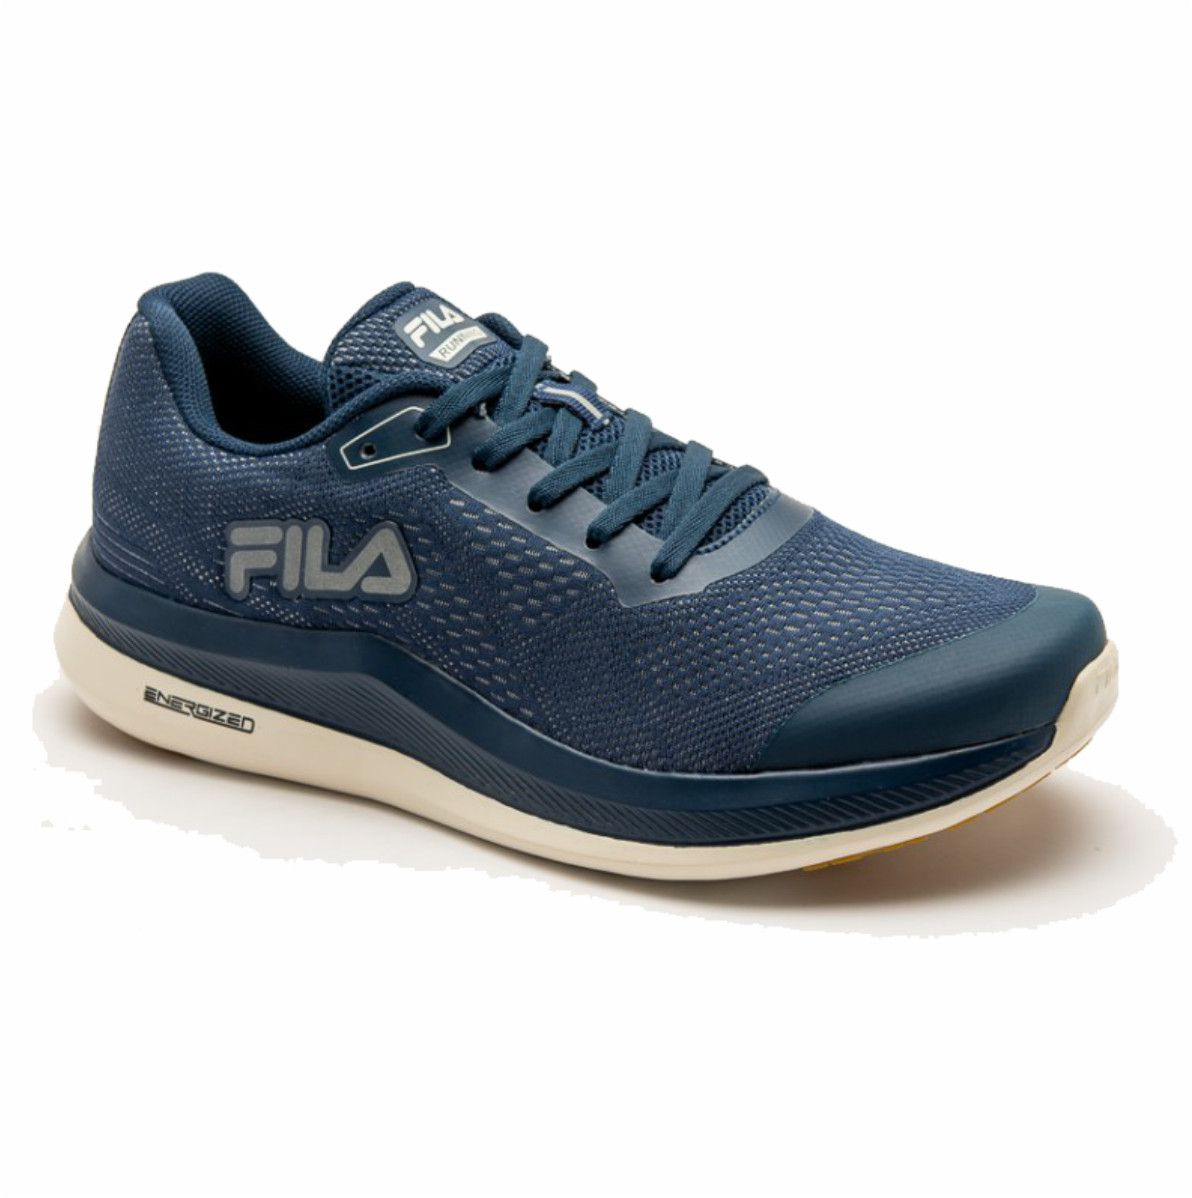 Tenis Fila FR Light Energized Masculino Marinho Off White